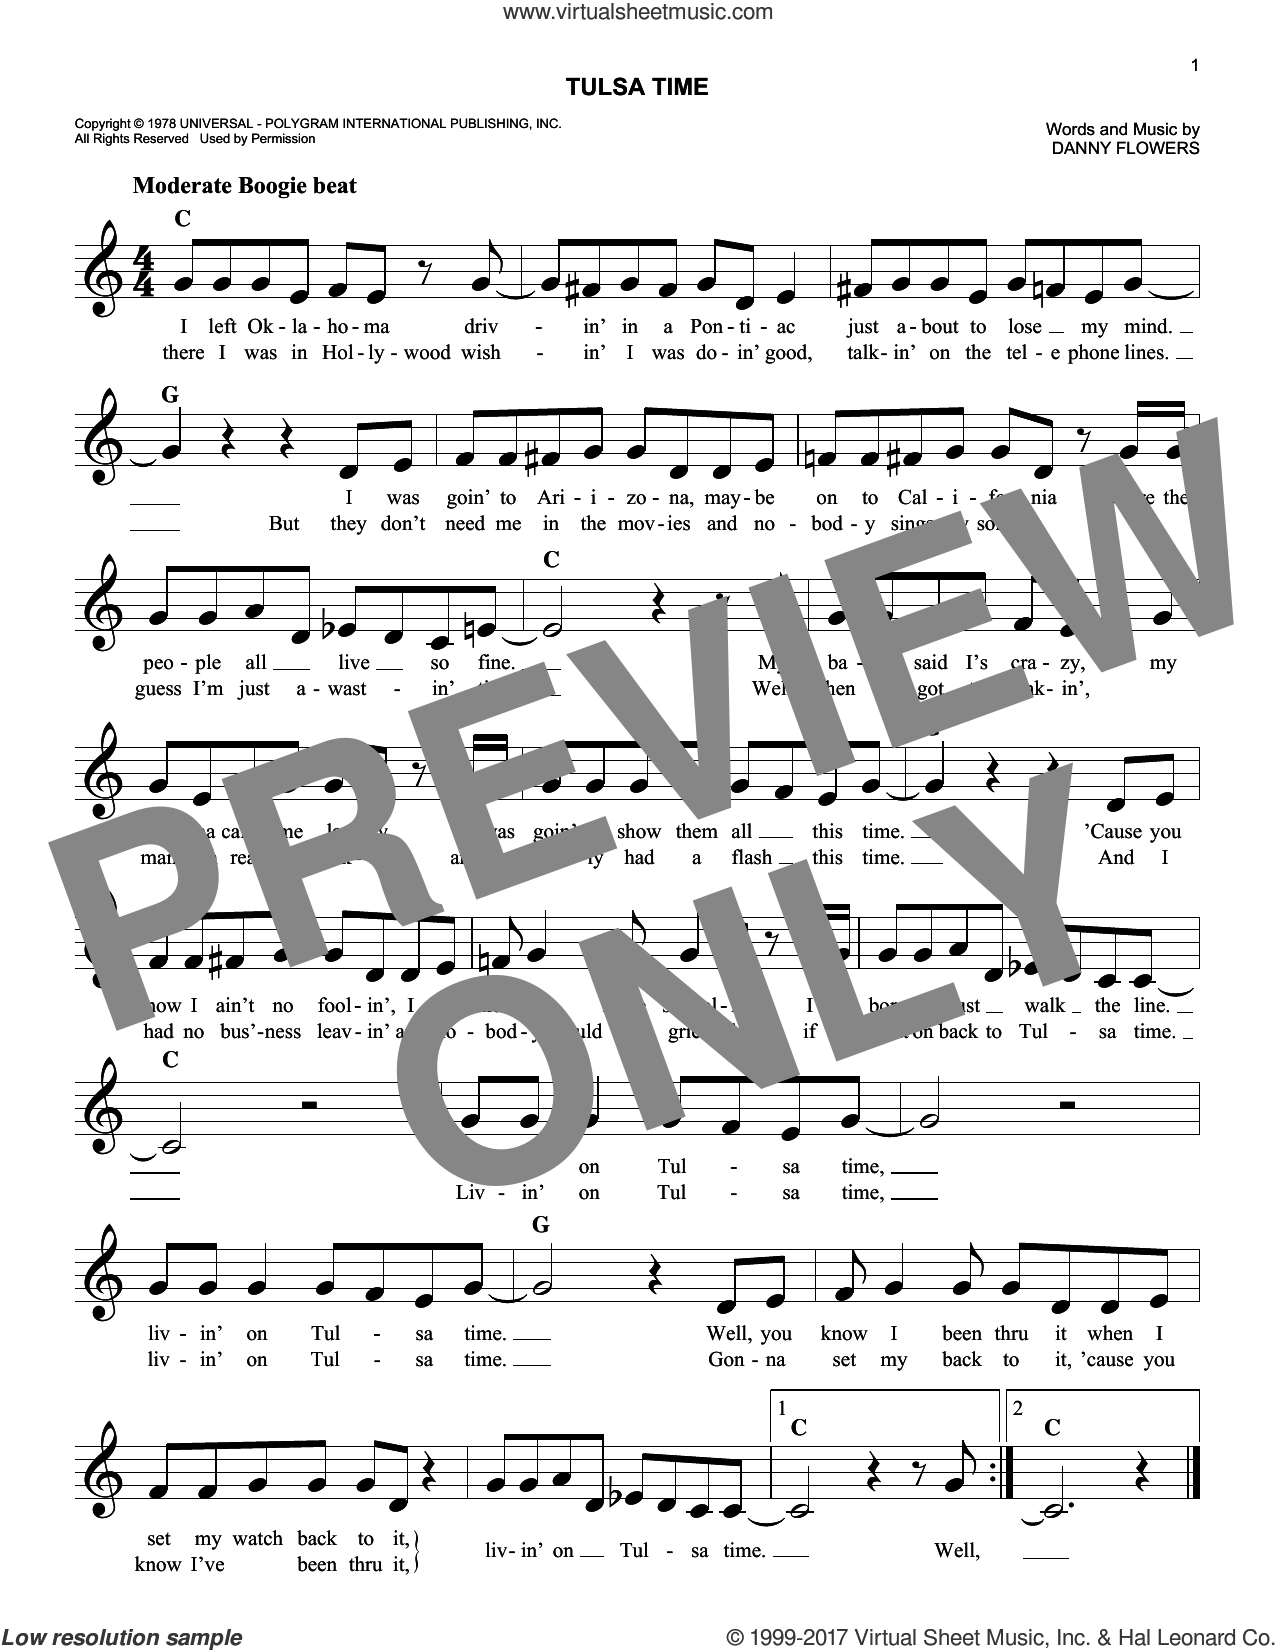 Tulsa Time sheet music for voice and other instruments (fake book) by Don Williams and Danny Flowers, intermediate skill level